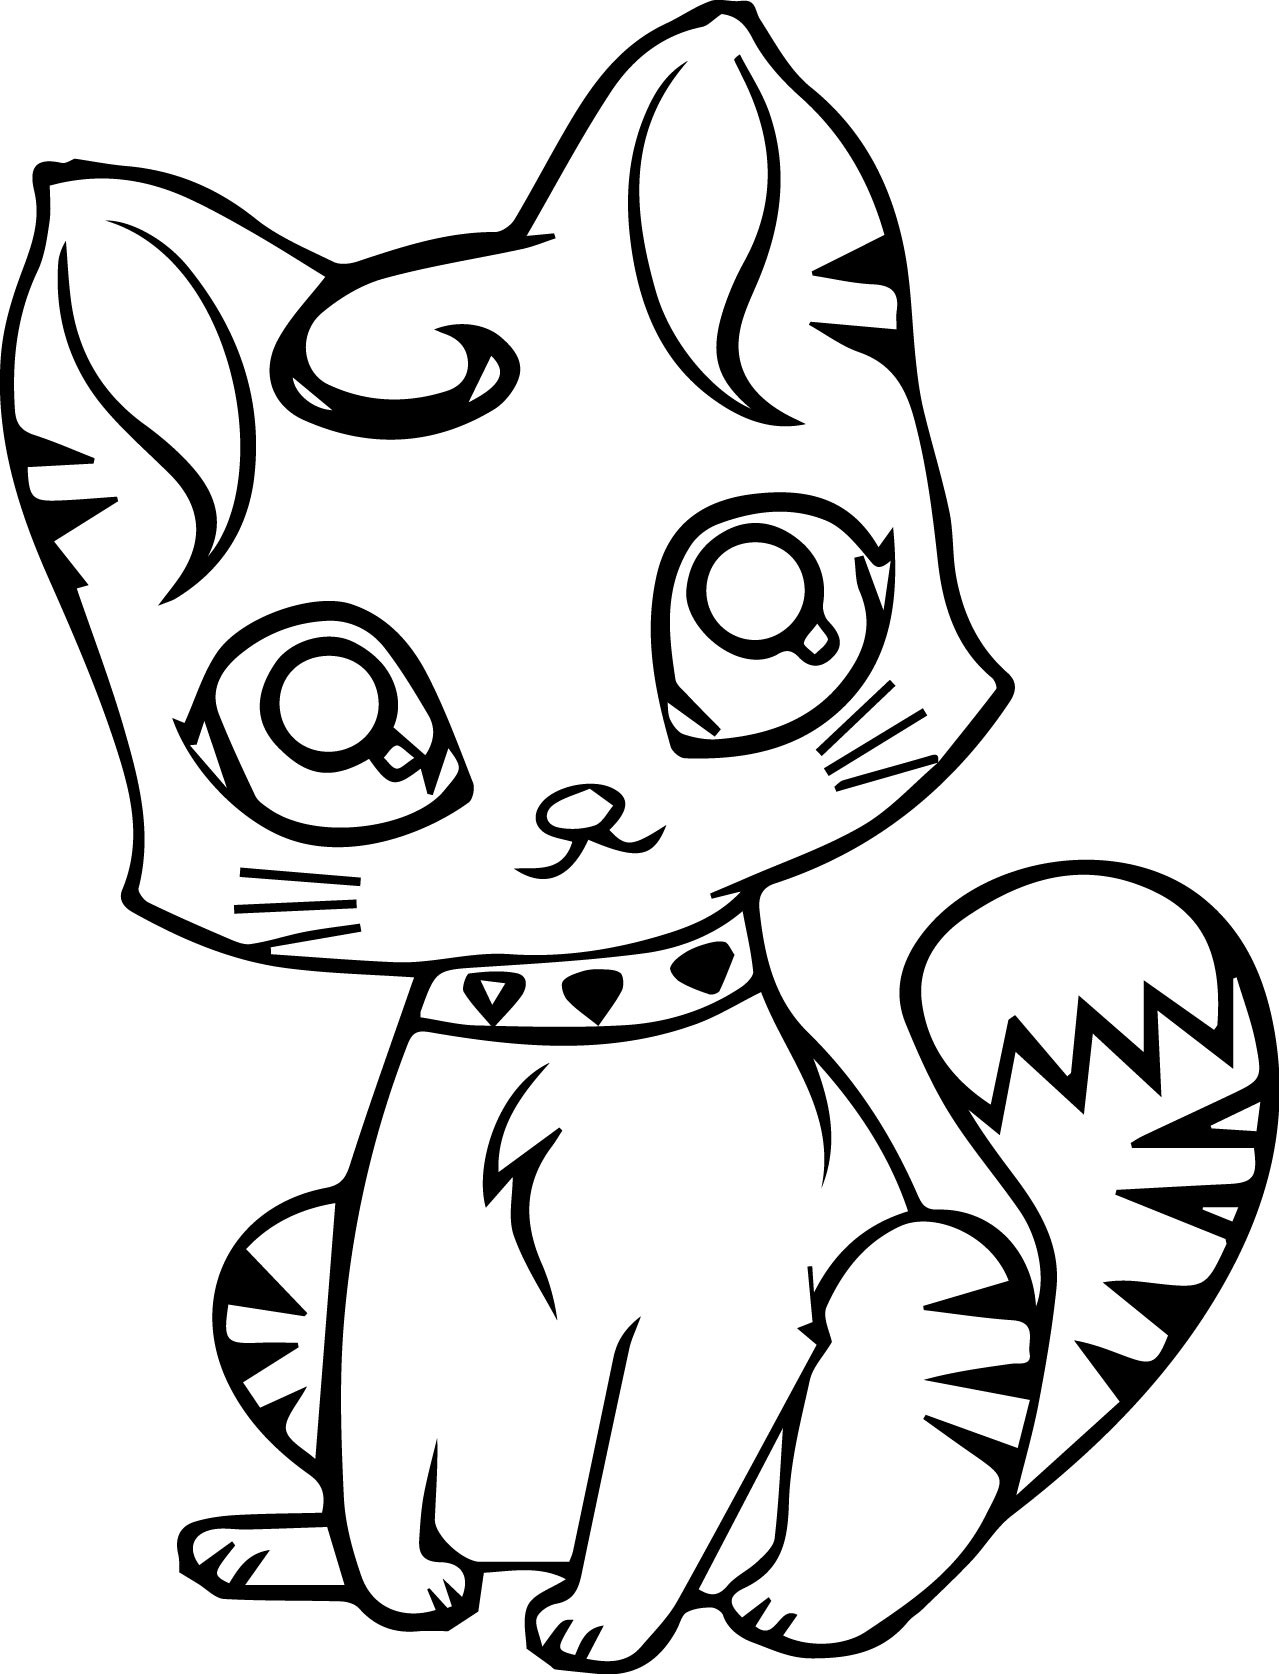 cats pictures to color cat coloring pages for adults best coloring pages for kids pictures cats color to